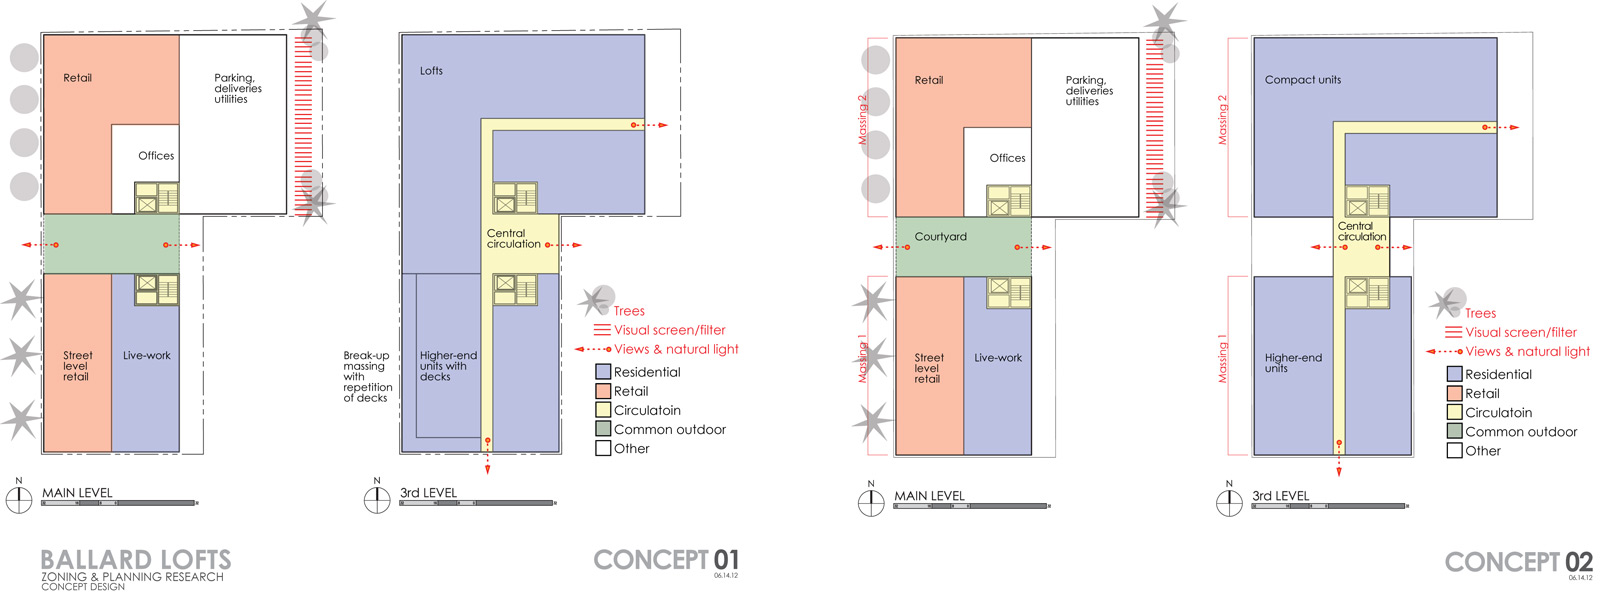 Zoning diagrams interior design electrical drawing wiring diagram metamorphosis architects interior design chandigarh rh metamorphosisdesign org nyc zoning guide examples of zoning ordinances ccuart Image collections